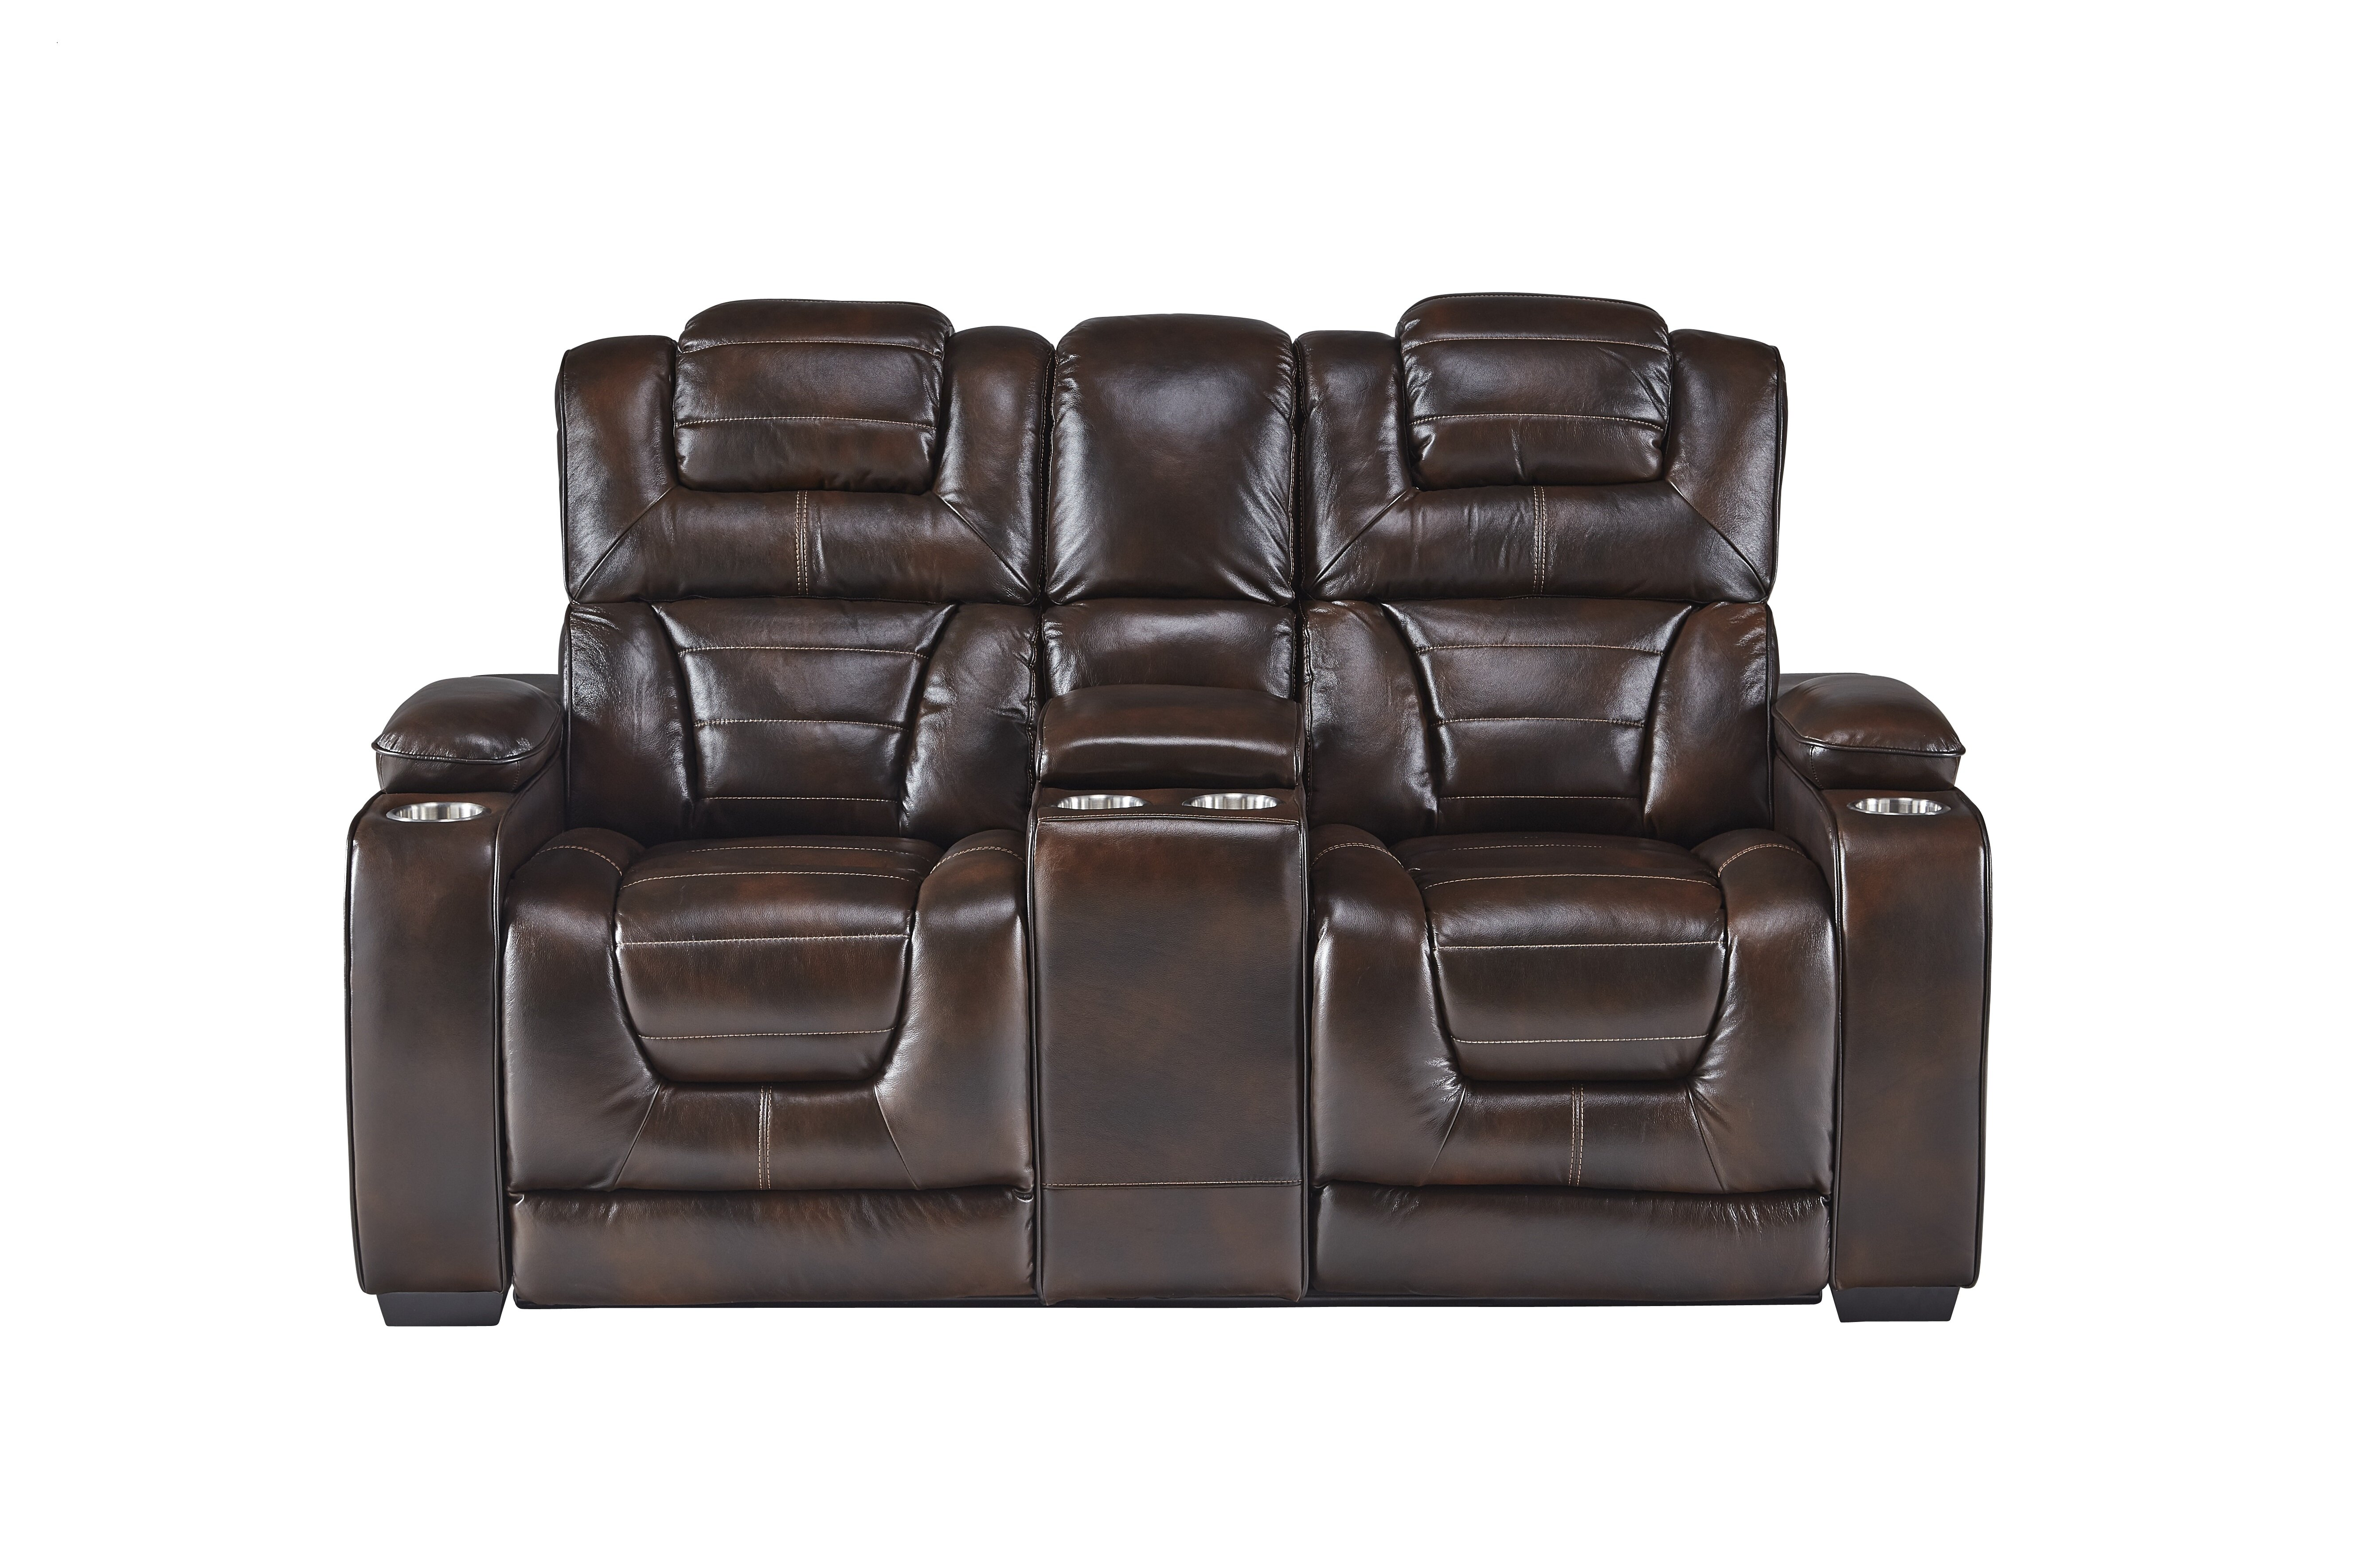 Swell Heiner Leather Home Theater Loveseat Squirreltailoven Fun Painted Chair Ideas Images Squirreltailovenorg